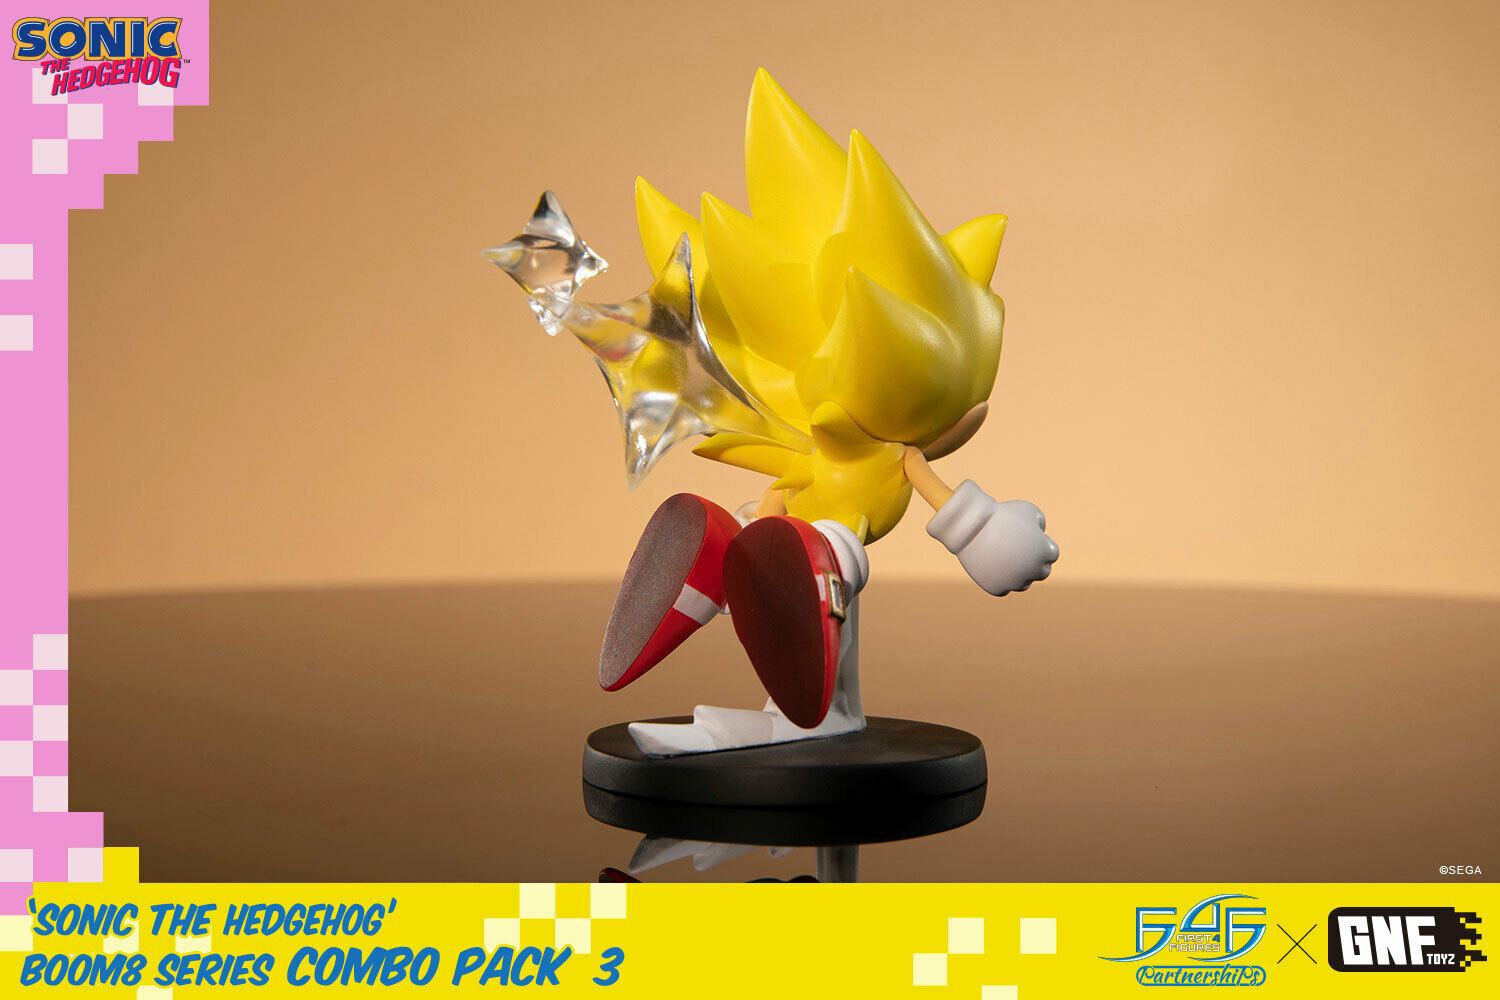 Sonic The Hedgehog Boom8 Series Figure Volume 1 For Sale Online Ebay